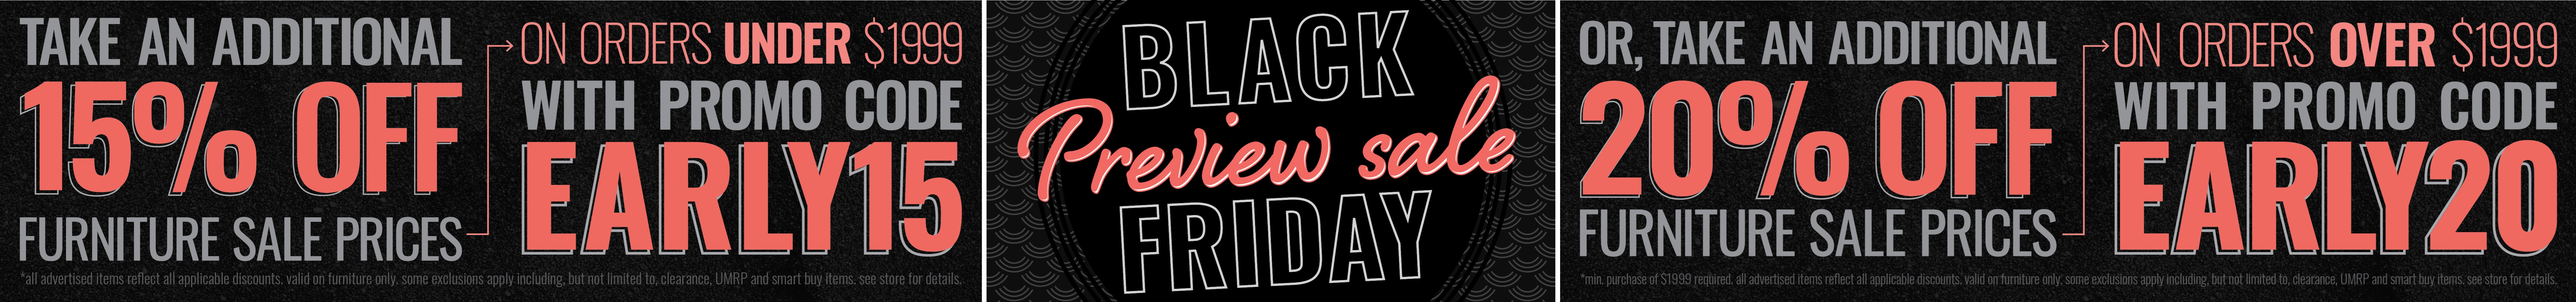 Furniture & ApplianceMart Black Friday Private Preview